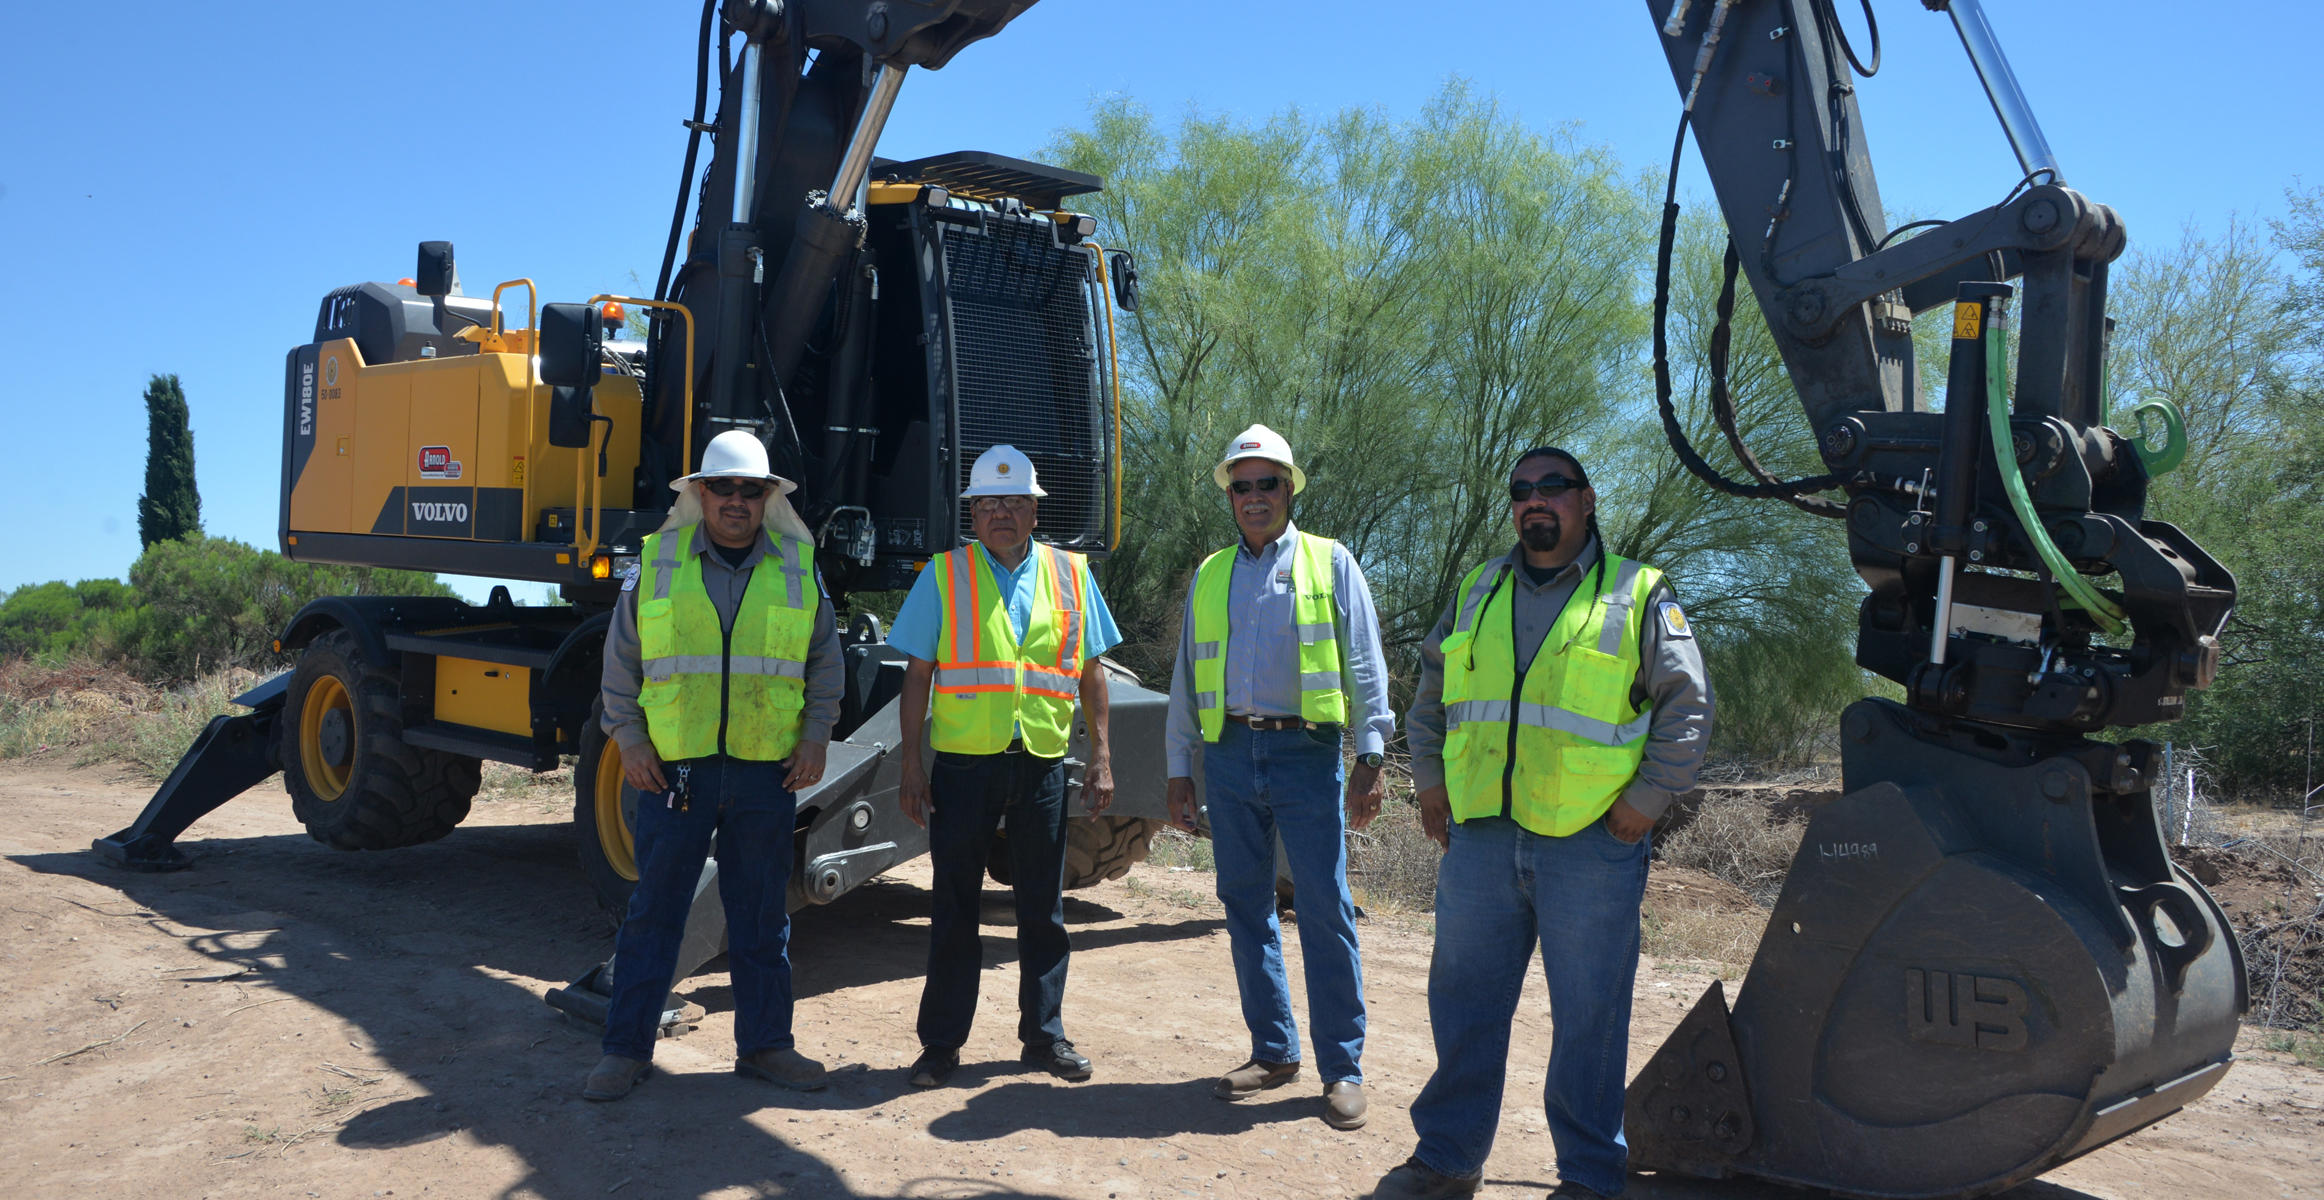 Workers at Salt River PIMA-MARICOPA Indian Community using a Volvo EW180E wheeled excavator